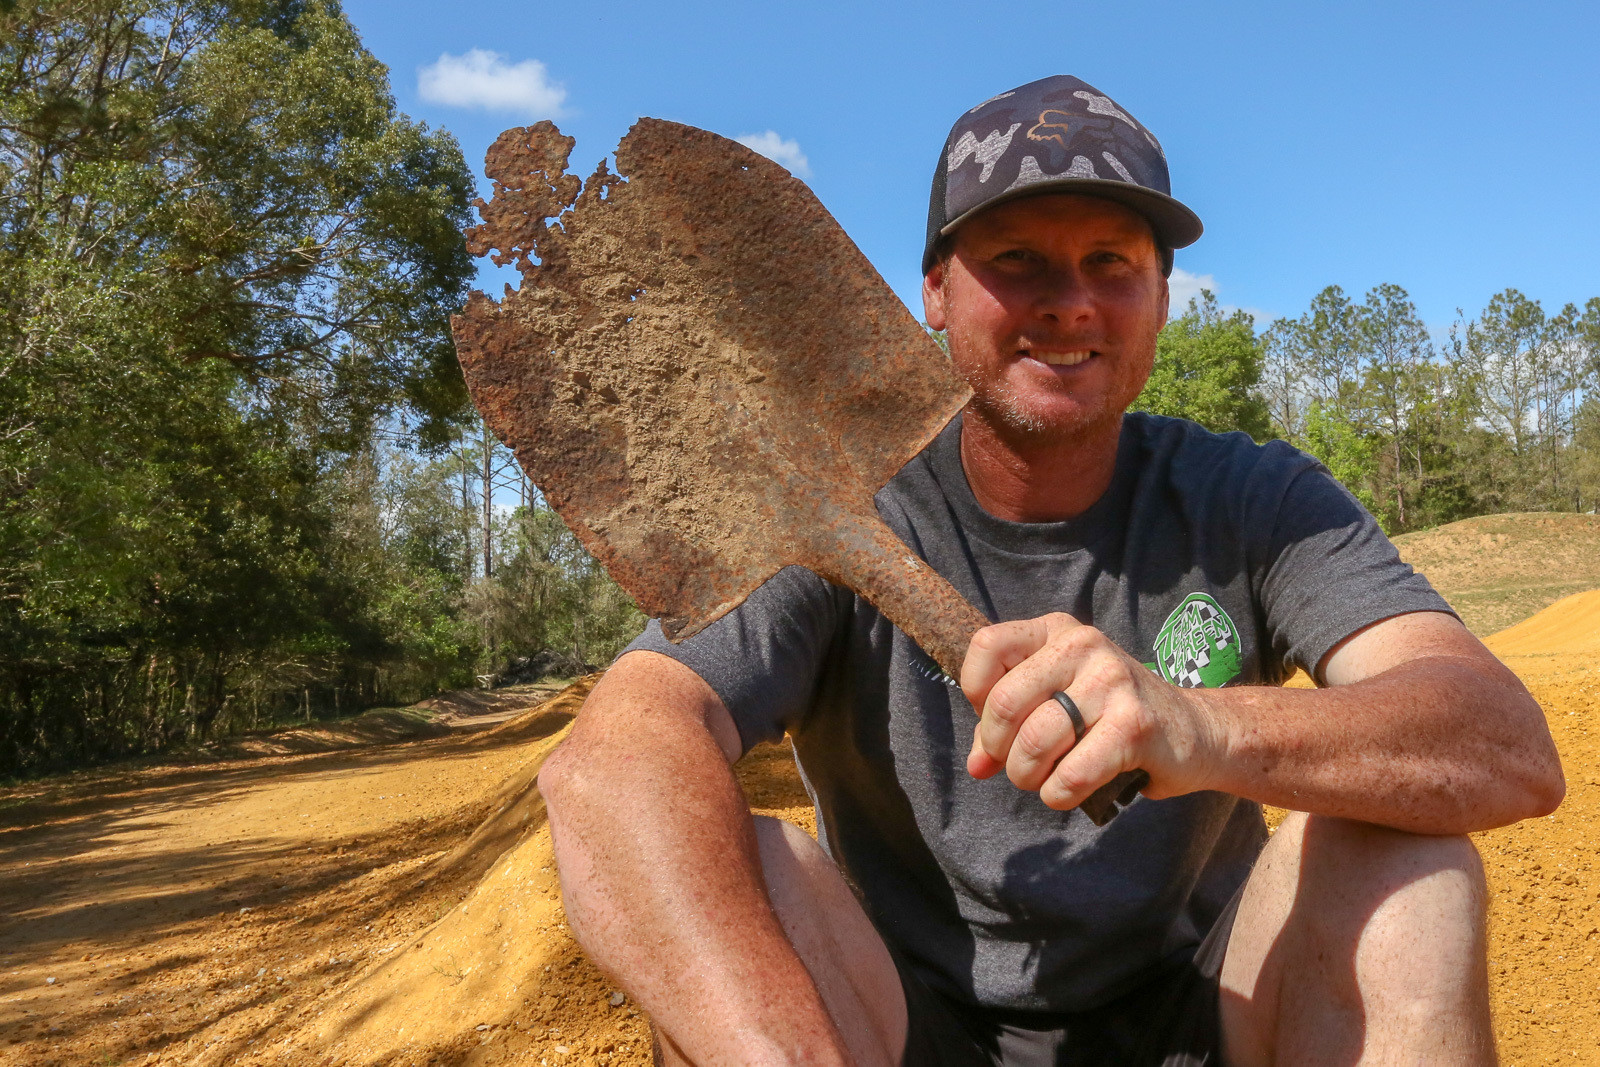 Tim said he used to prep the gate at his original track with this shovel...which should give you an idea of how long he's had his track.